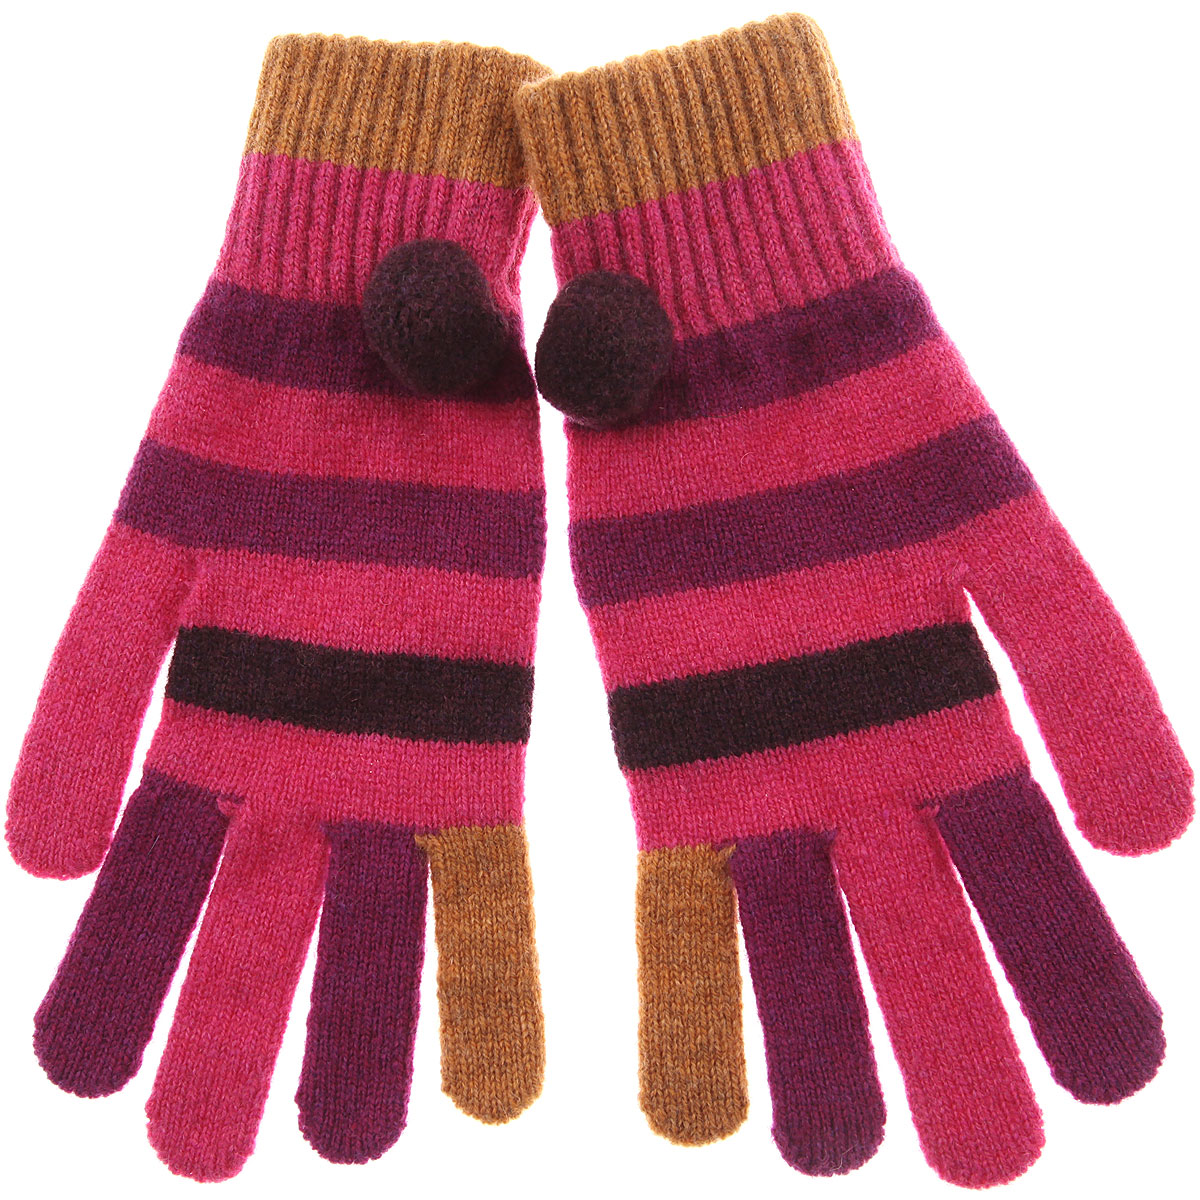 Image of Paul Smith Gloves for Women, Pink, Wool, 2017